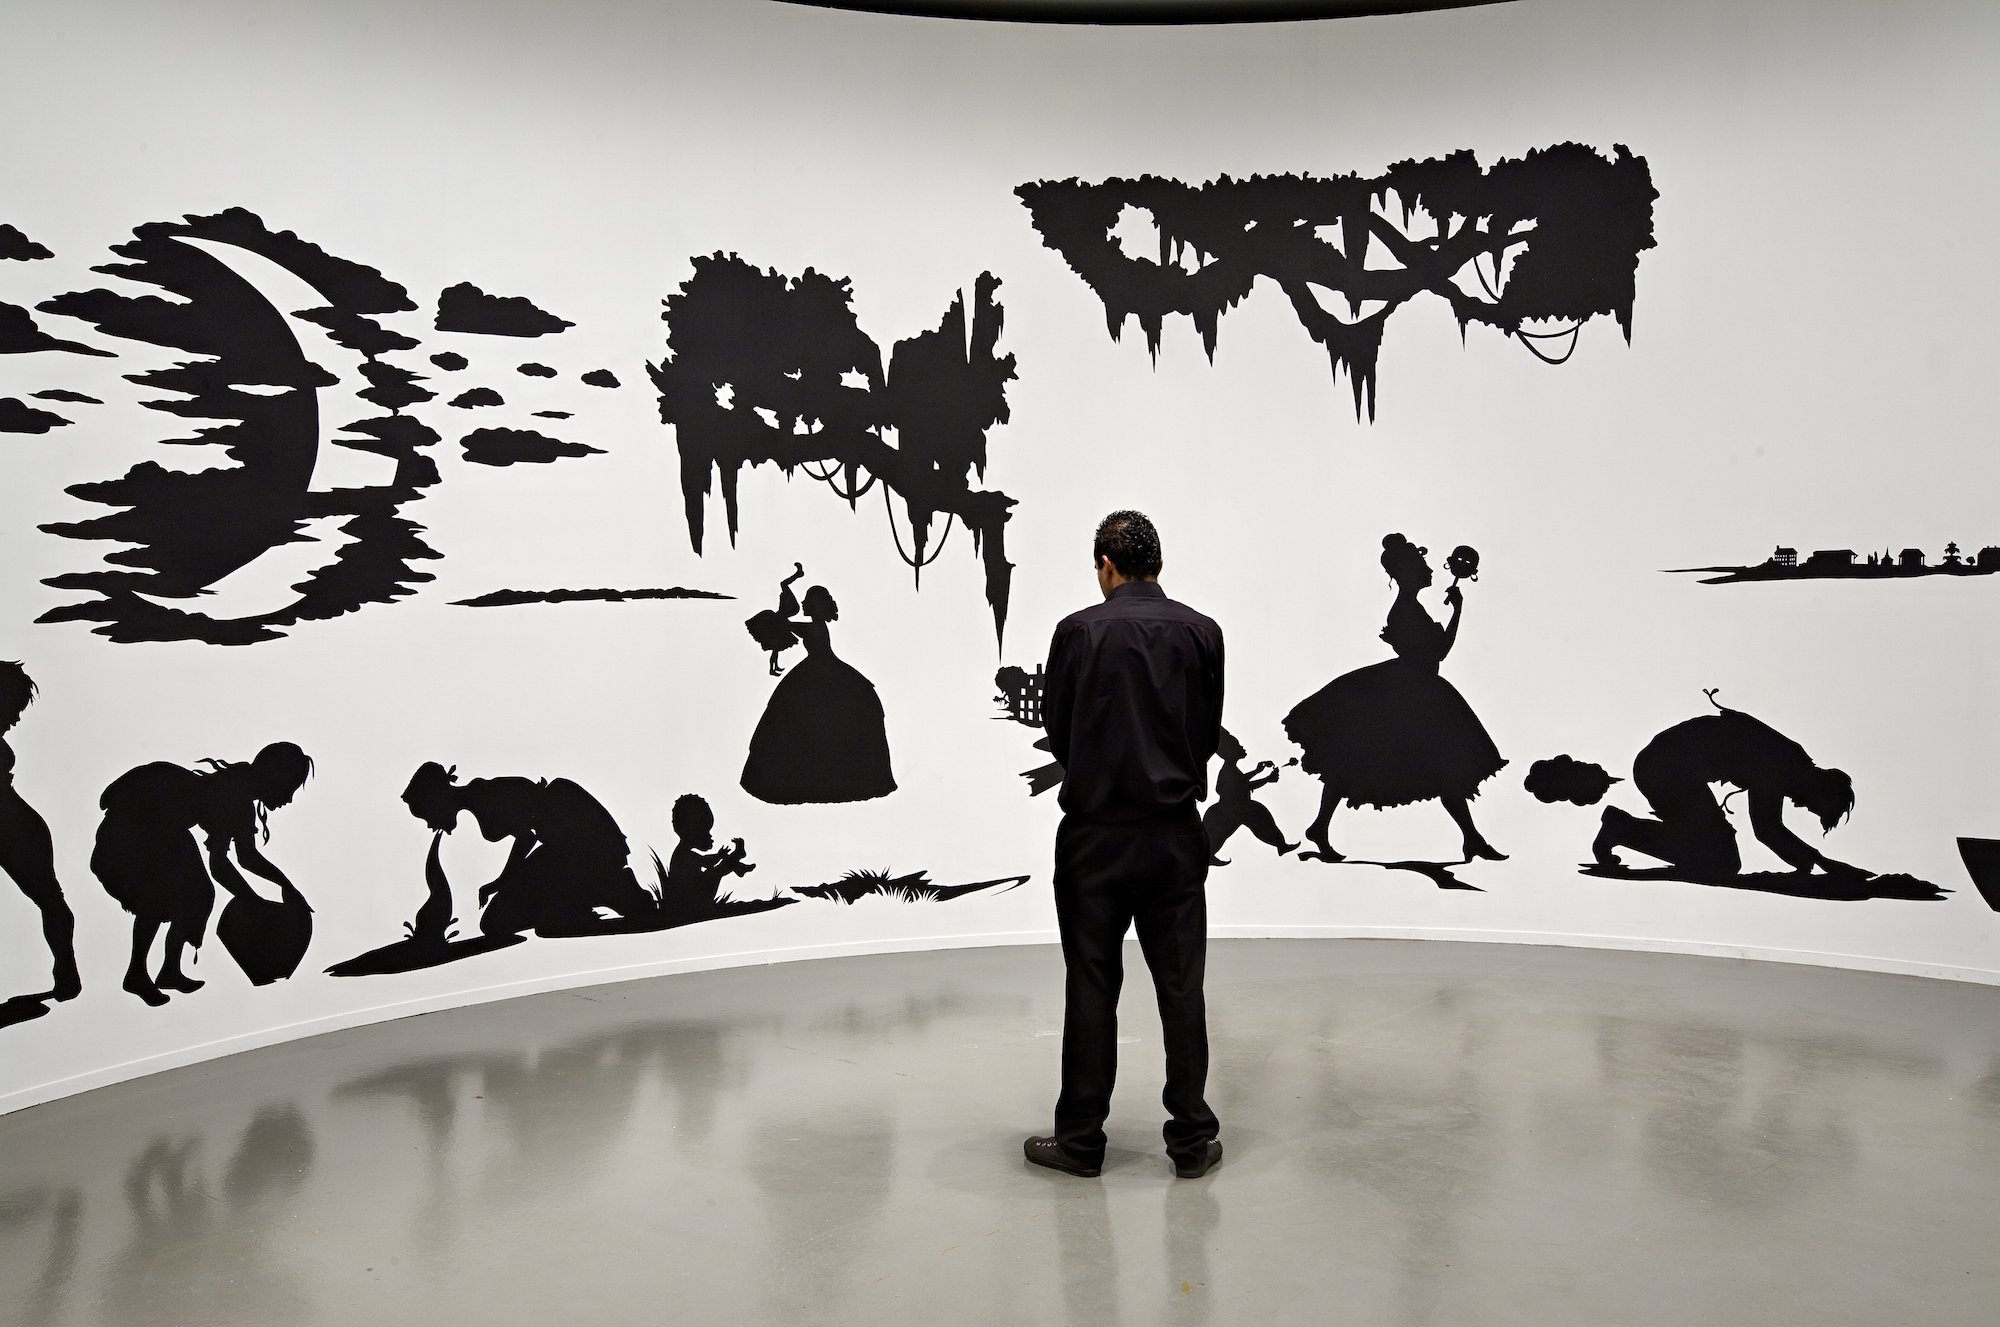 """Kara Walker, Slavery! Slavery! Presenting a GRAND and LIFELIKE Panoramic Journey into Picturesque Southern Slavery or """"Life at 'Ol' Virginny's Hole' (sketches from Plantation Life)"""" See the Peculiar Institution as never before! All cut from black paper by the able hand of Kara Elizabeth Walker, an Emancipated Negress and leader in her Cause , 1997. Cut paper on wall, approx. 144 x 1,020 inches.ARC/Musée d'Art moderne de la Ville de Paris, 2007. Photo: Florian Kleinefenn"""